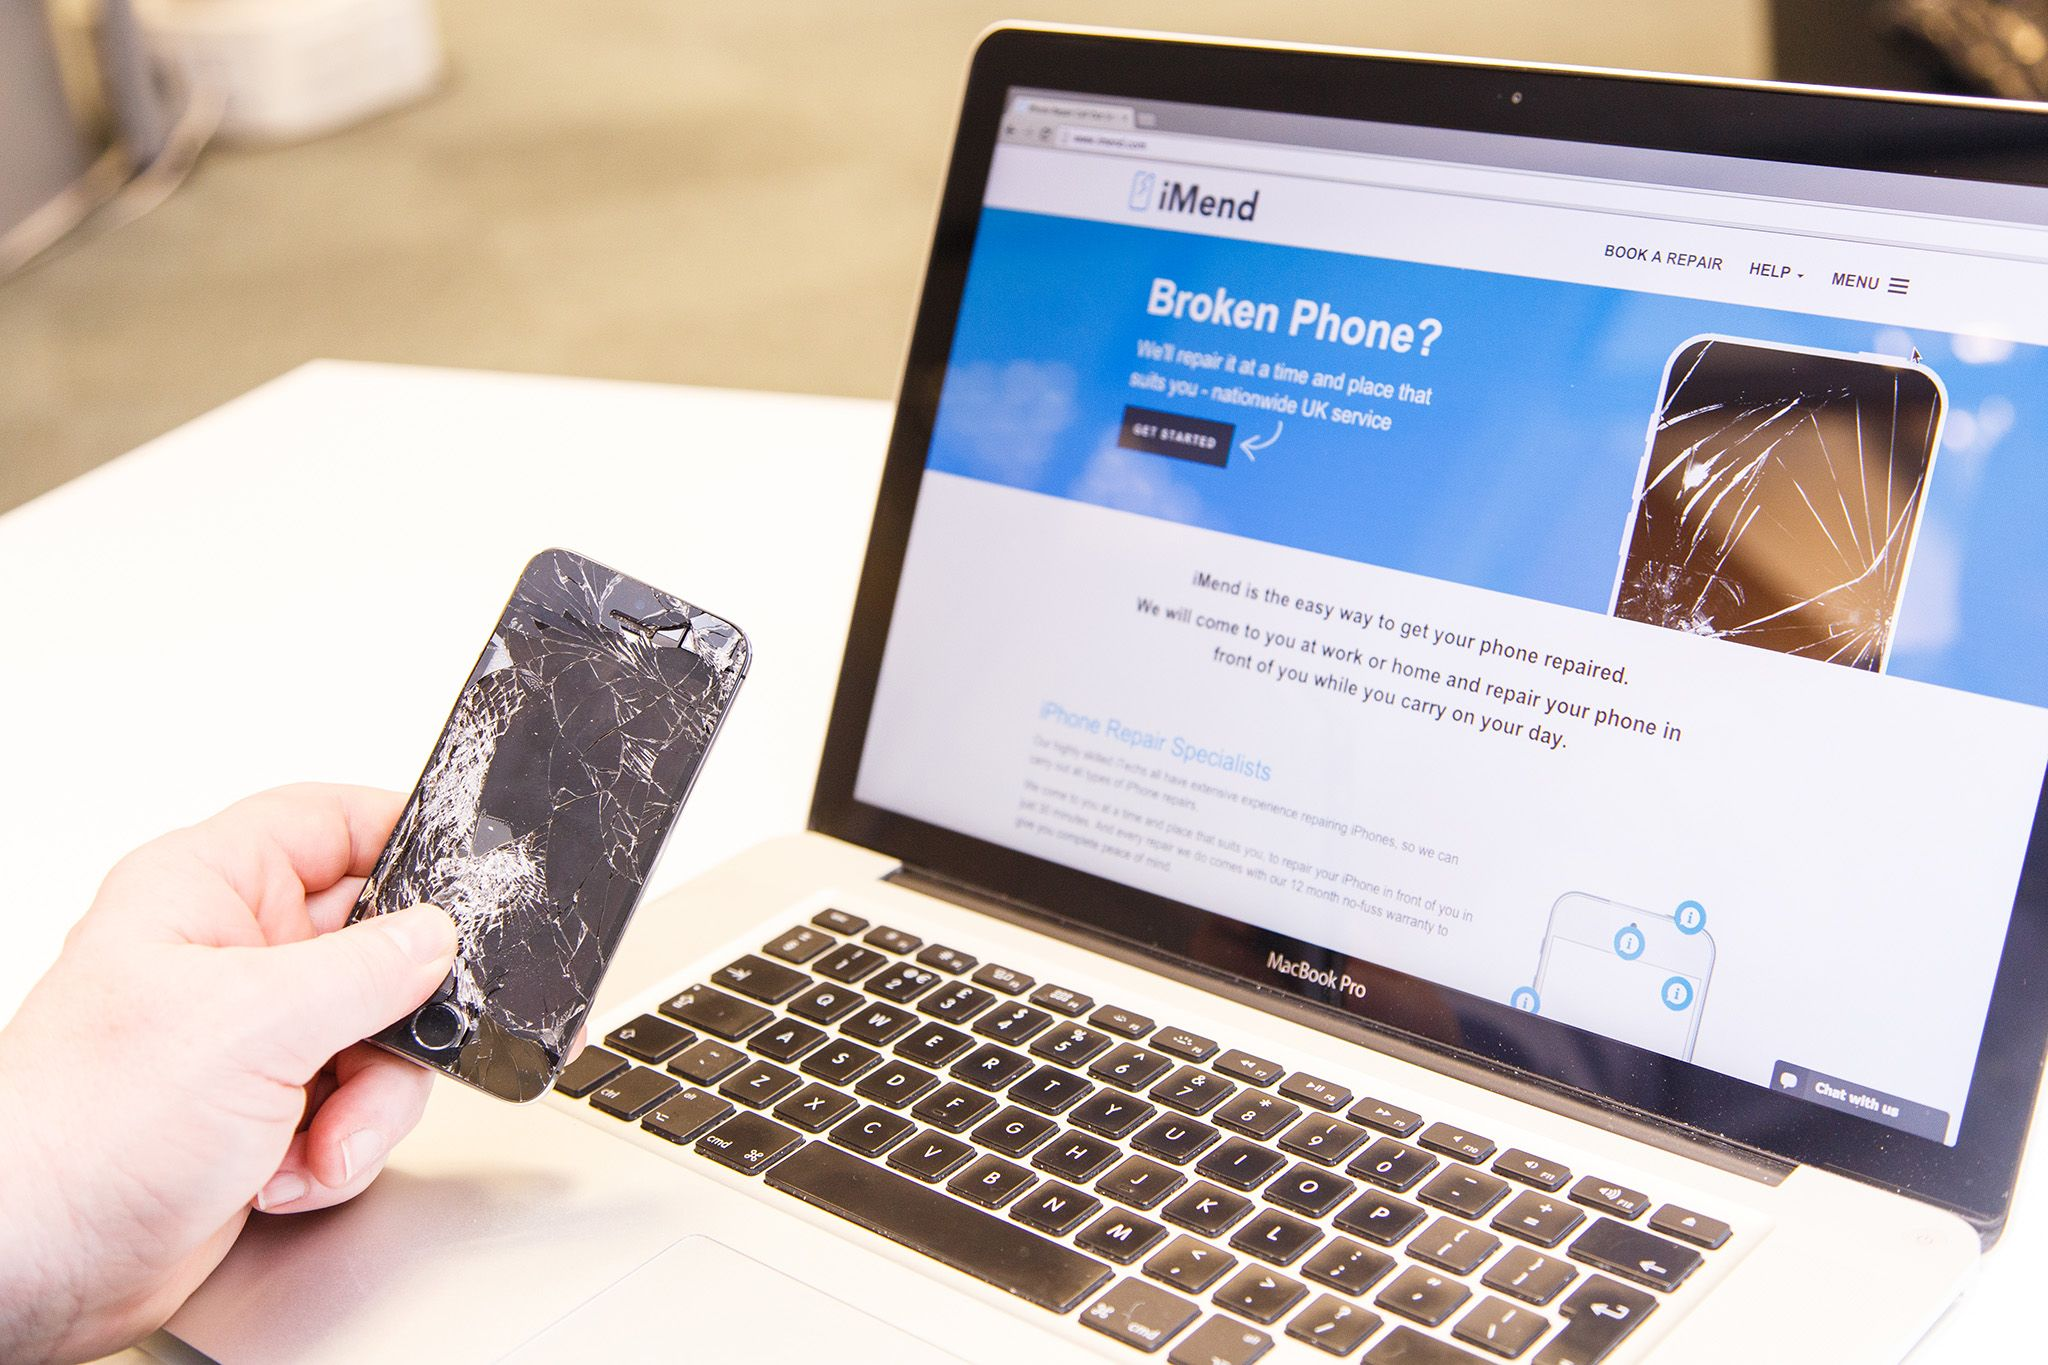 UK Smartphone repair company iMend.com offers nationwide, same-day, on-site service